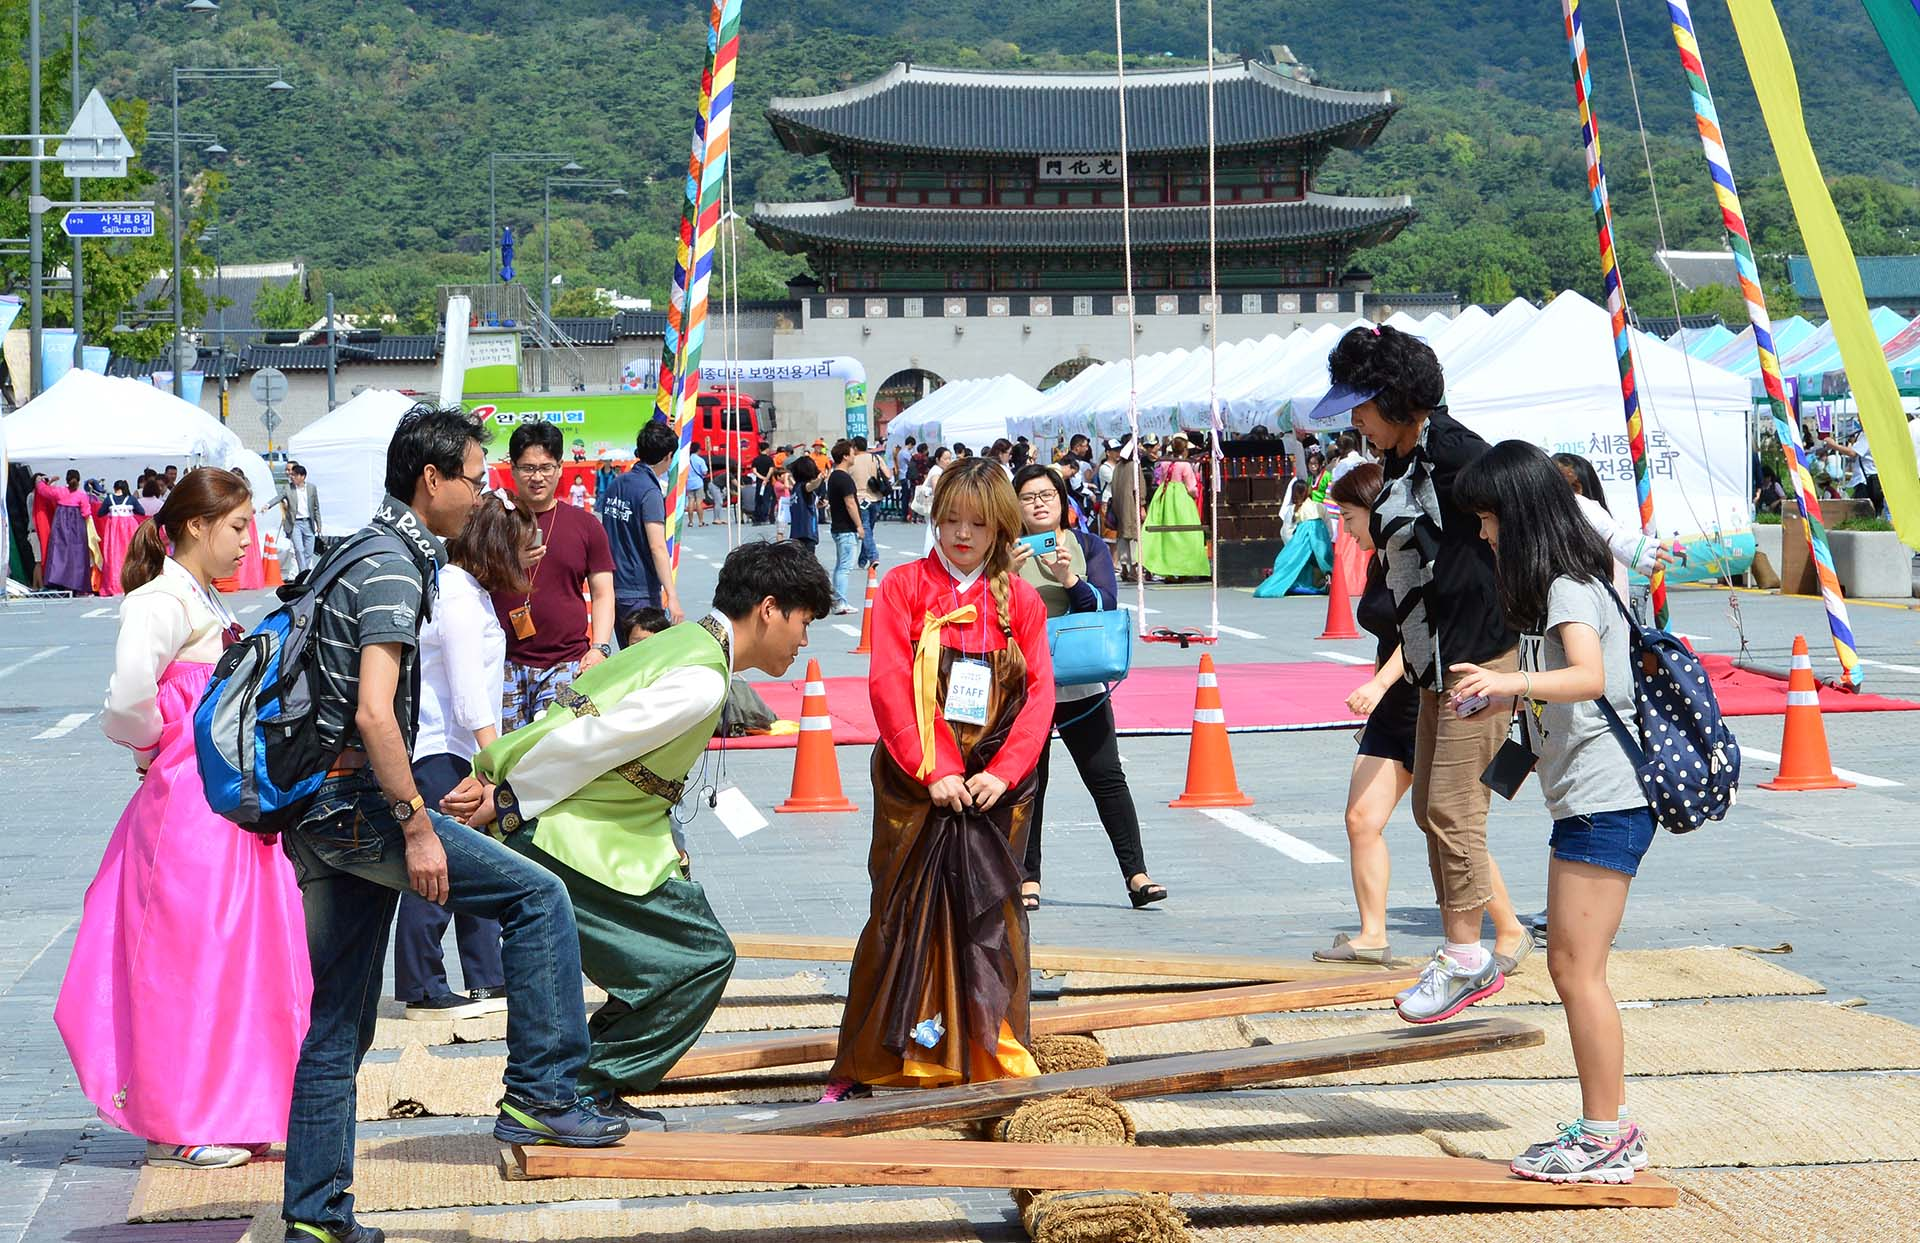 Royal palaces, museums in Seoul open during Chuseok holiday